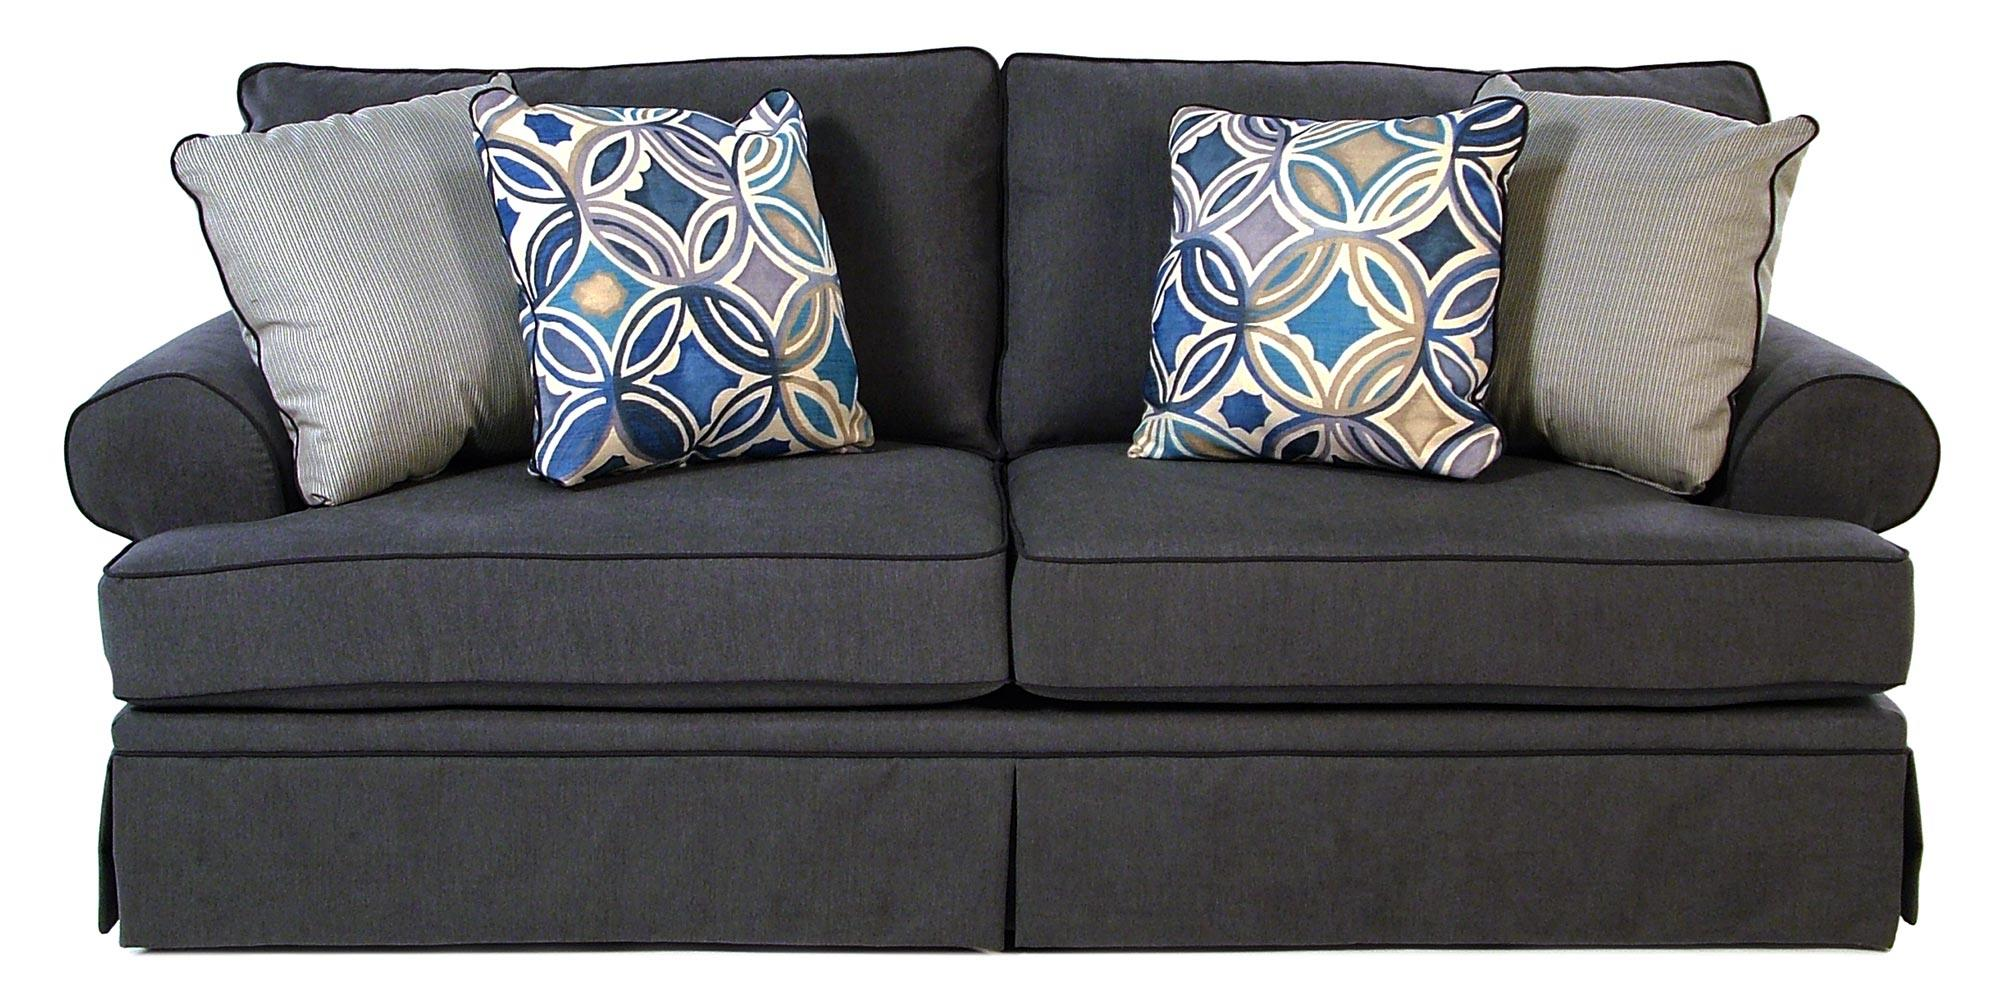 Broyhill Furniture Emily Casual Style Sofa   Item Number: 6262 3